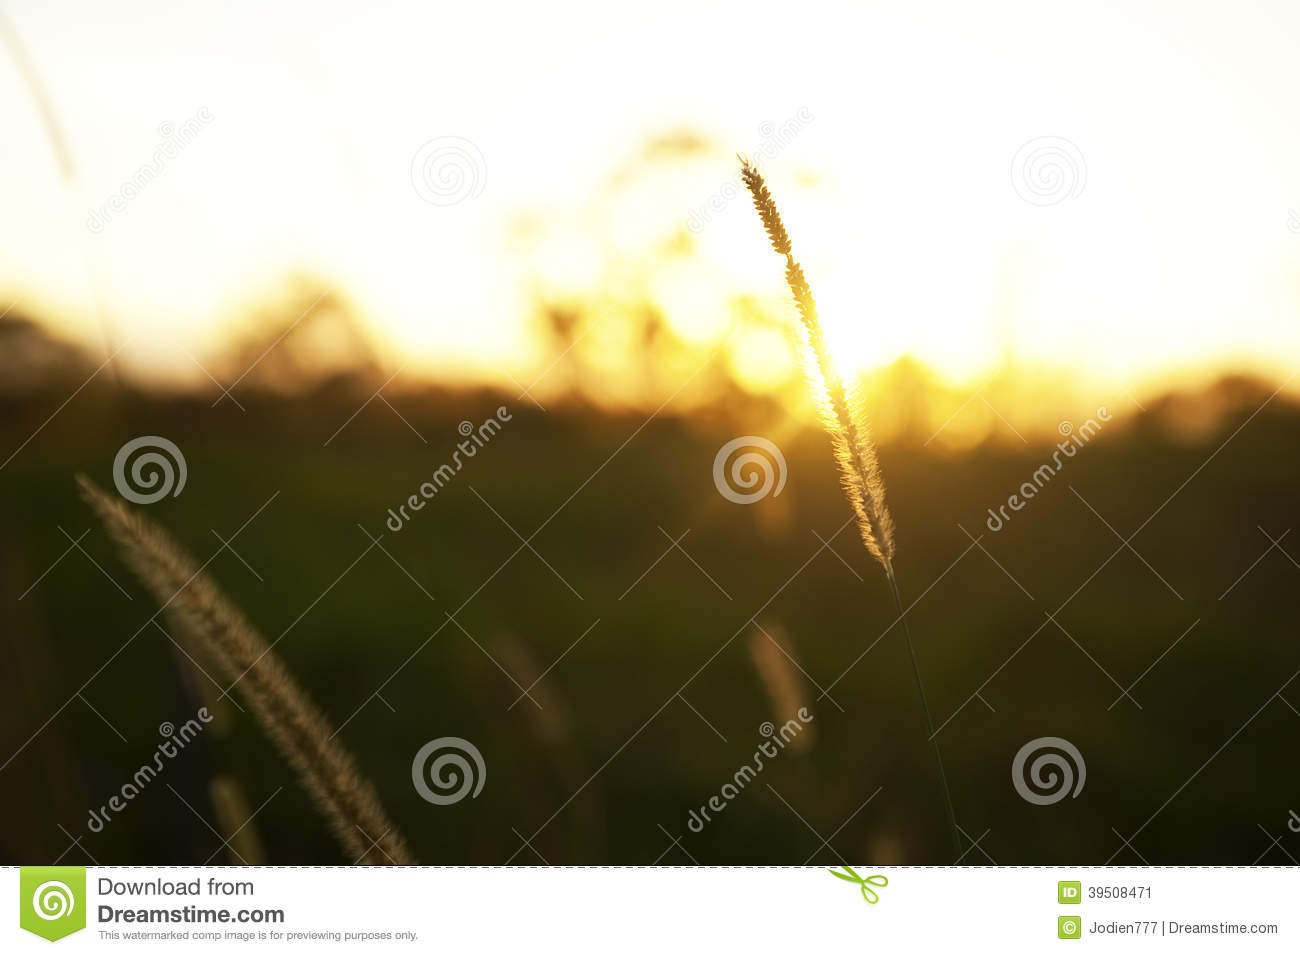 Grain at sunrise with sunbeams